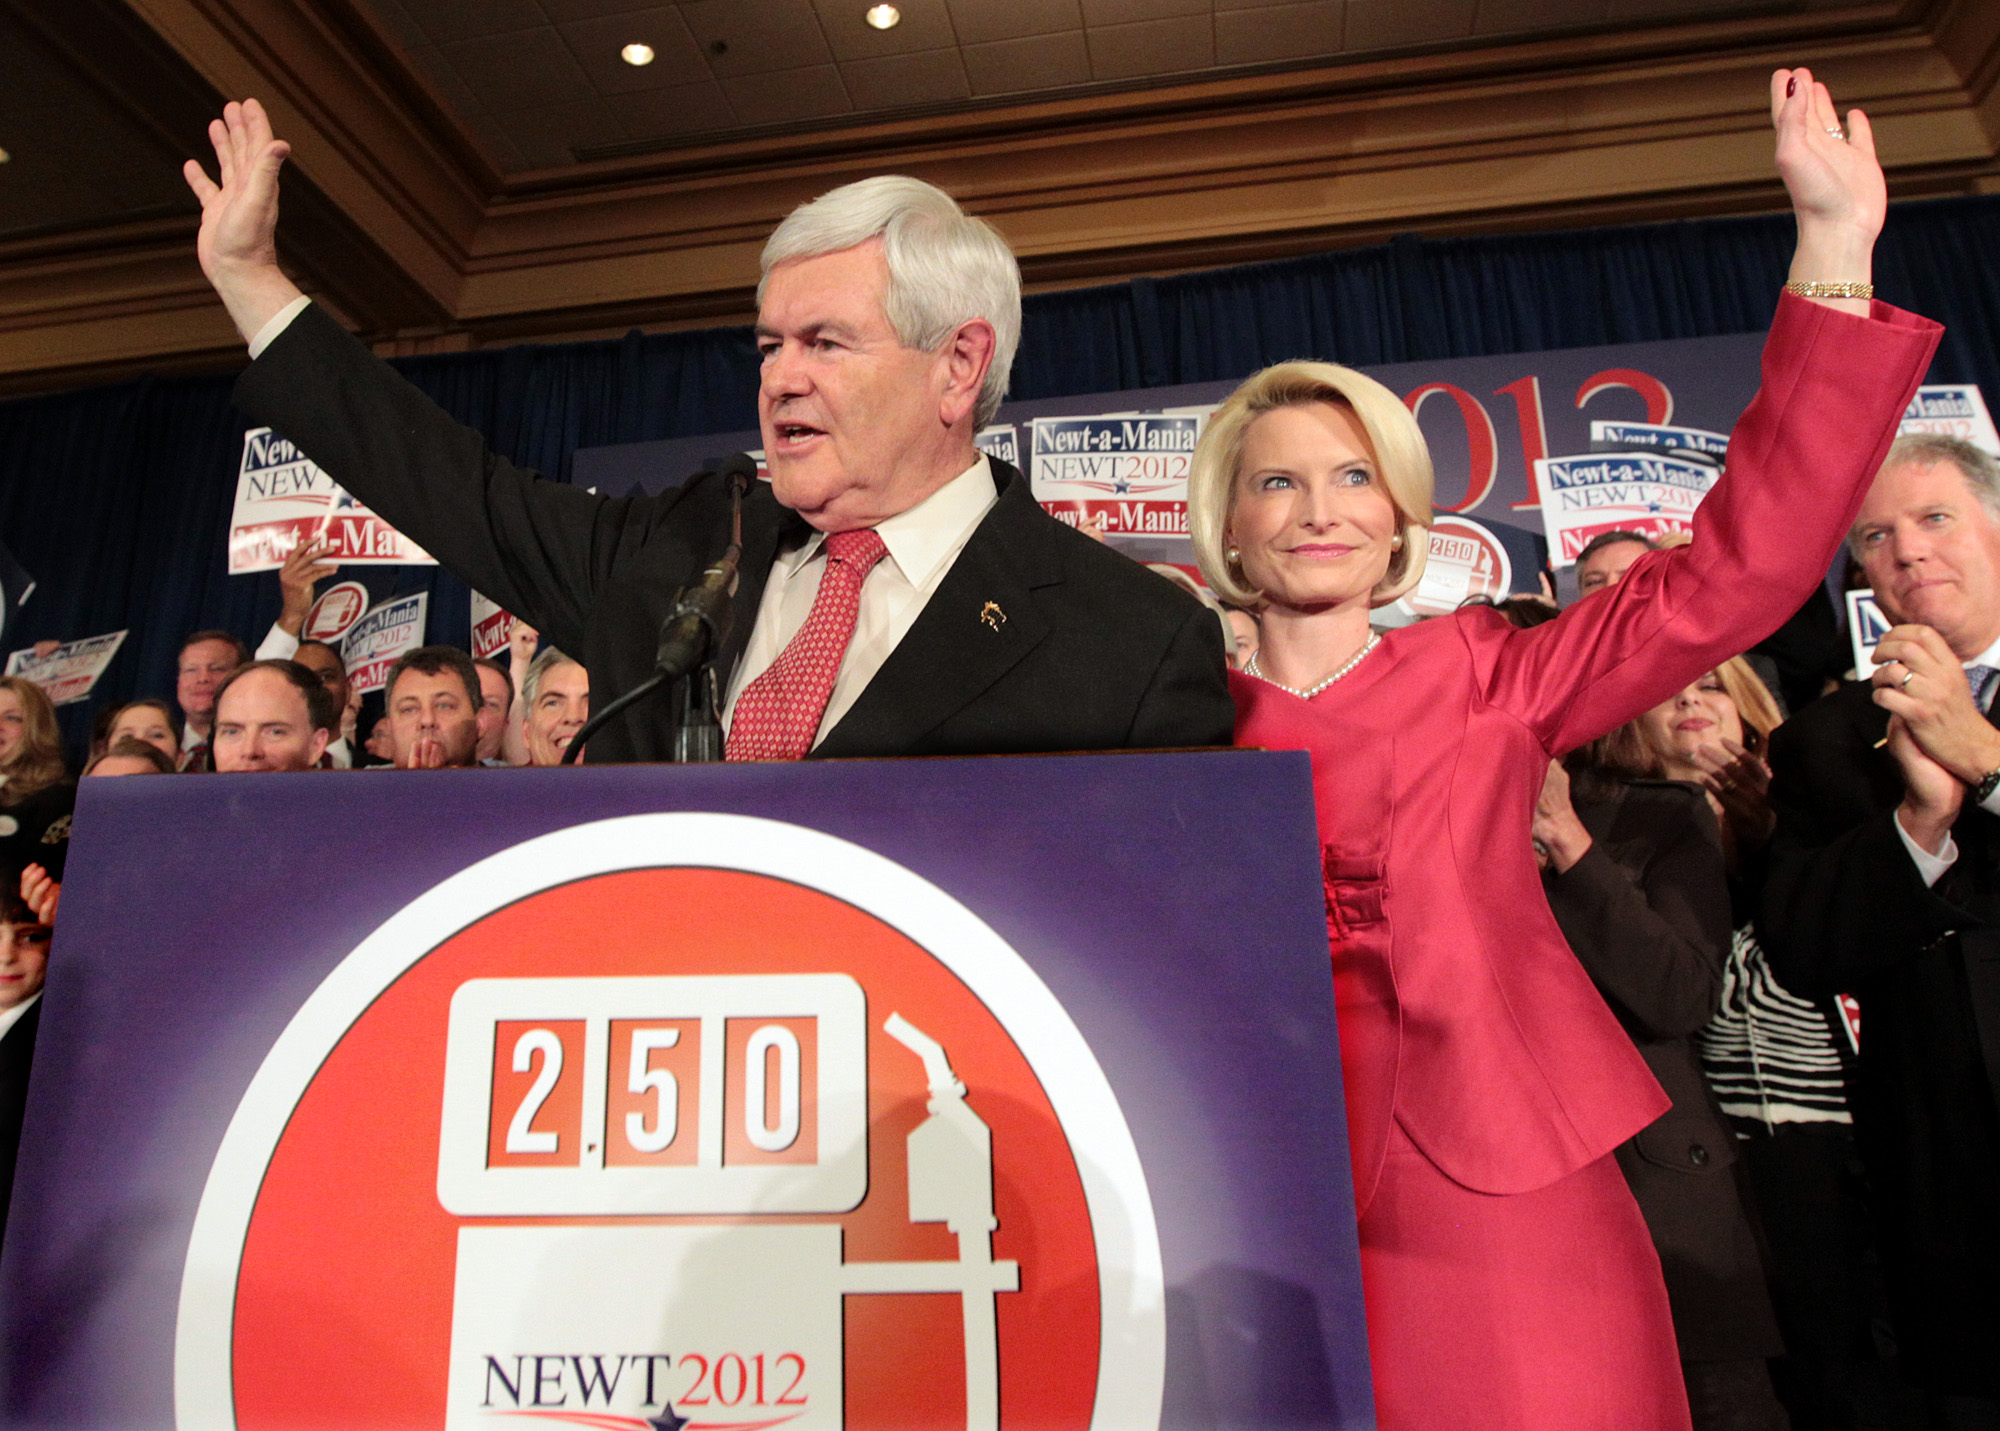 Republicans plan to kill Obama regulations the Newt Gingrich way